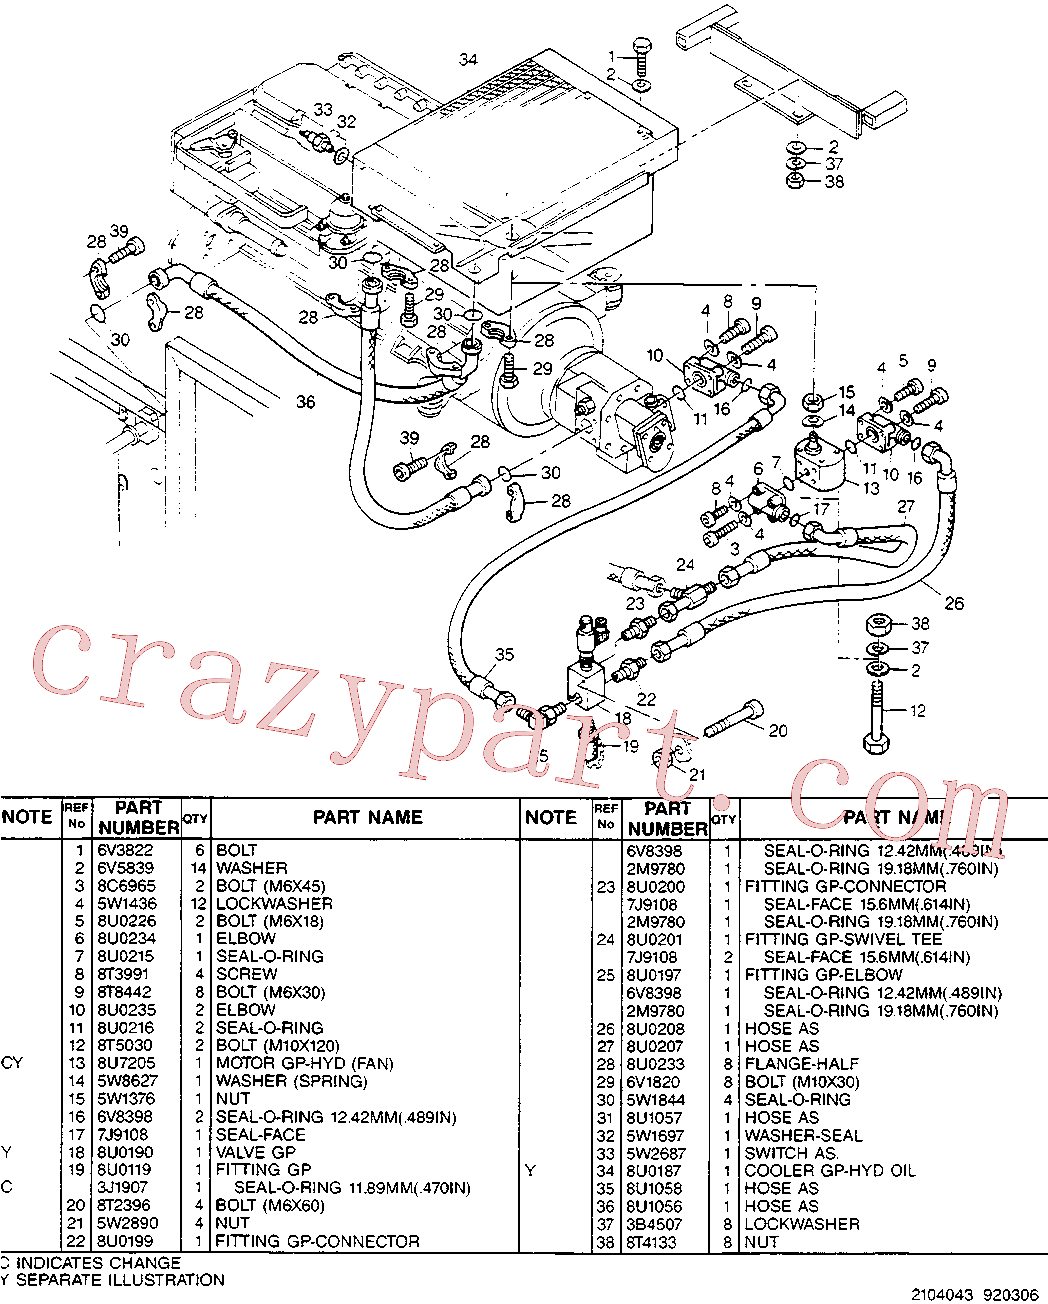 CAT 8U-2156 for 224B Excavator(EXC) hydraulic system 8U-3949 Assembly